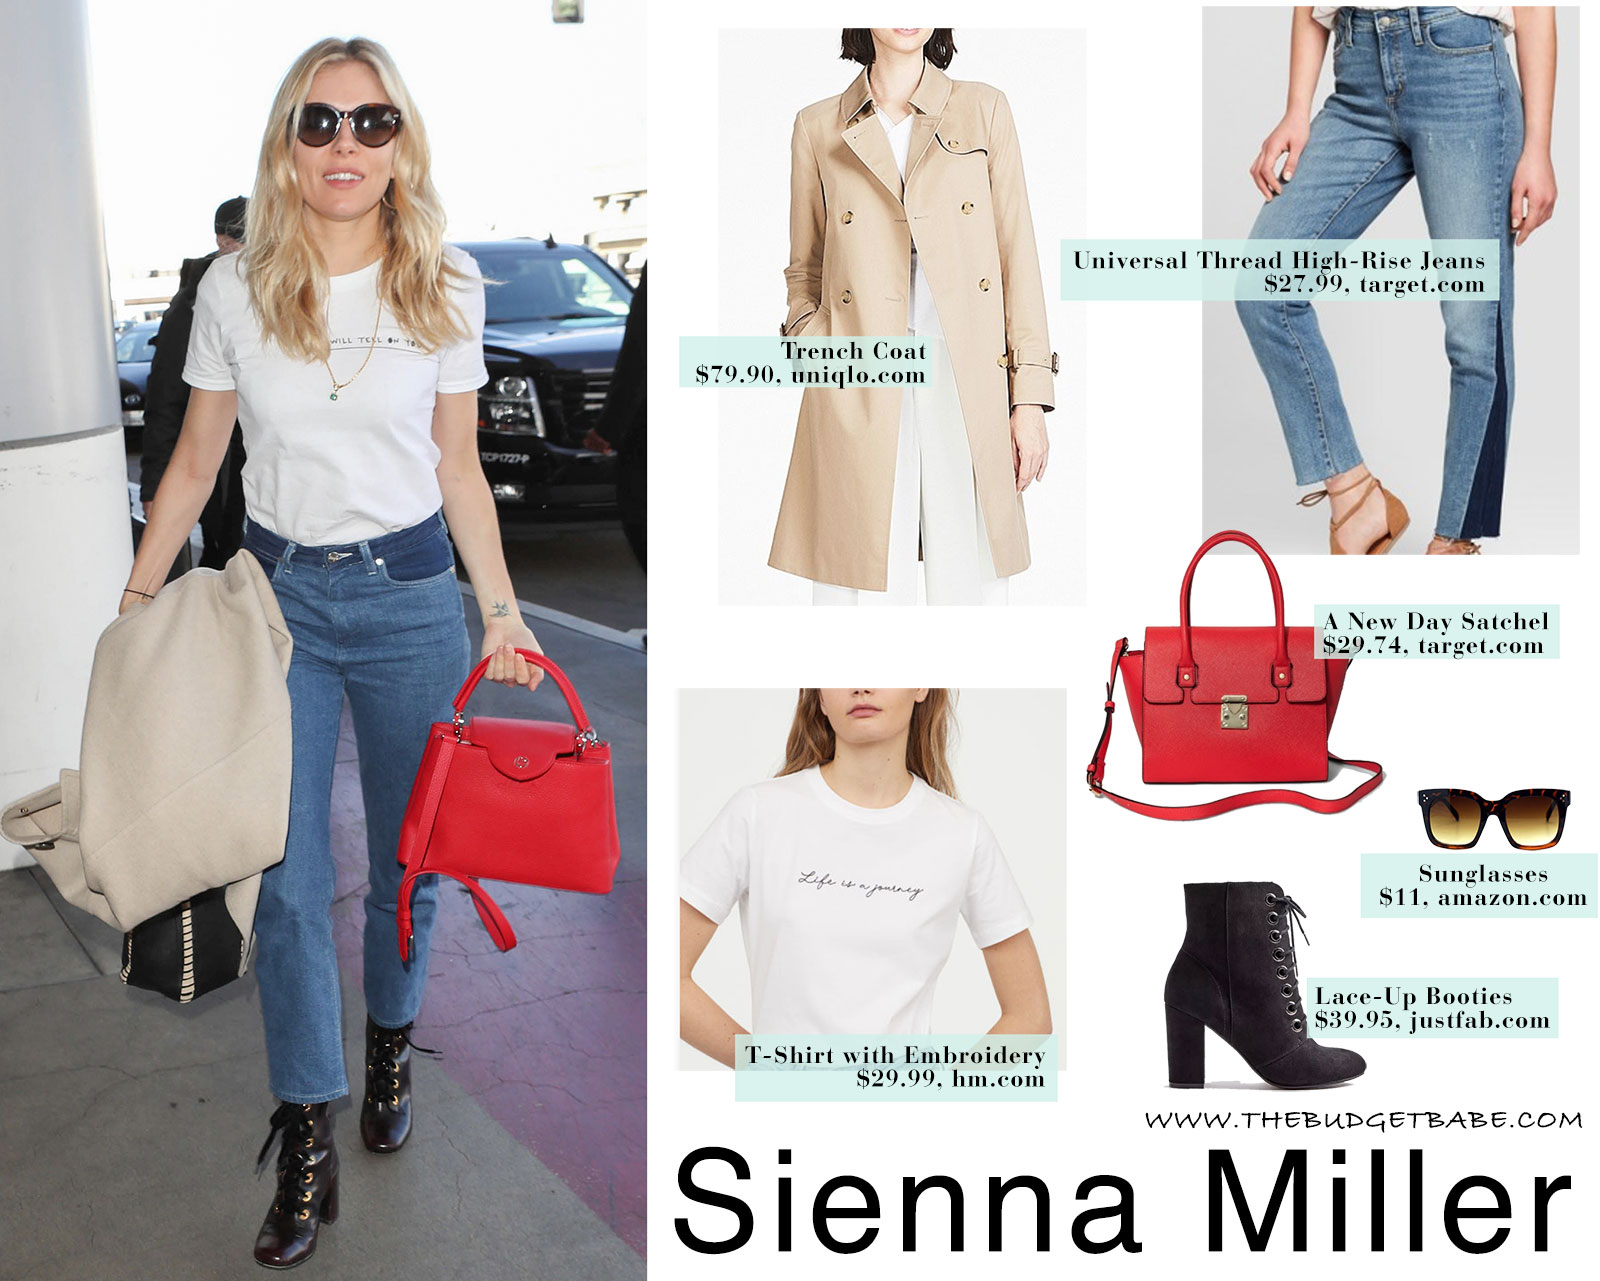 Sienna Miller's white t-shirt, high-rise jeans, black ankle boots and red purse look for less